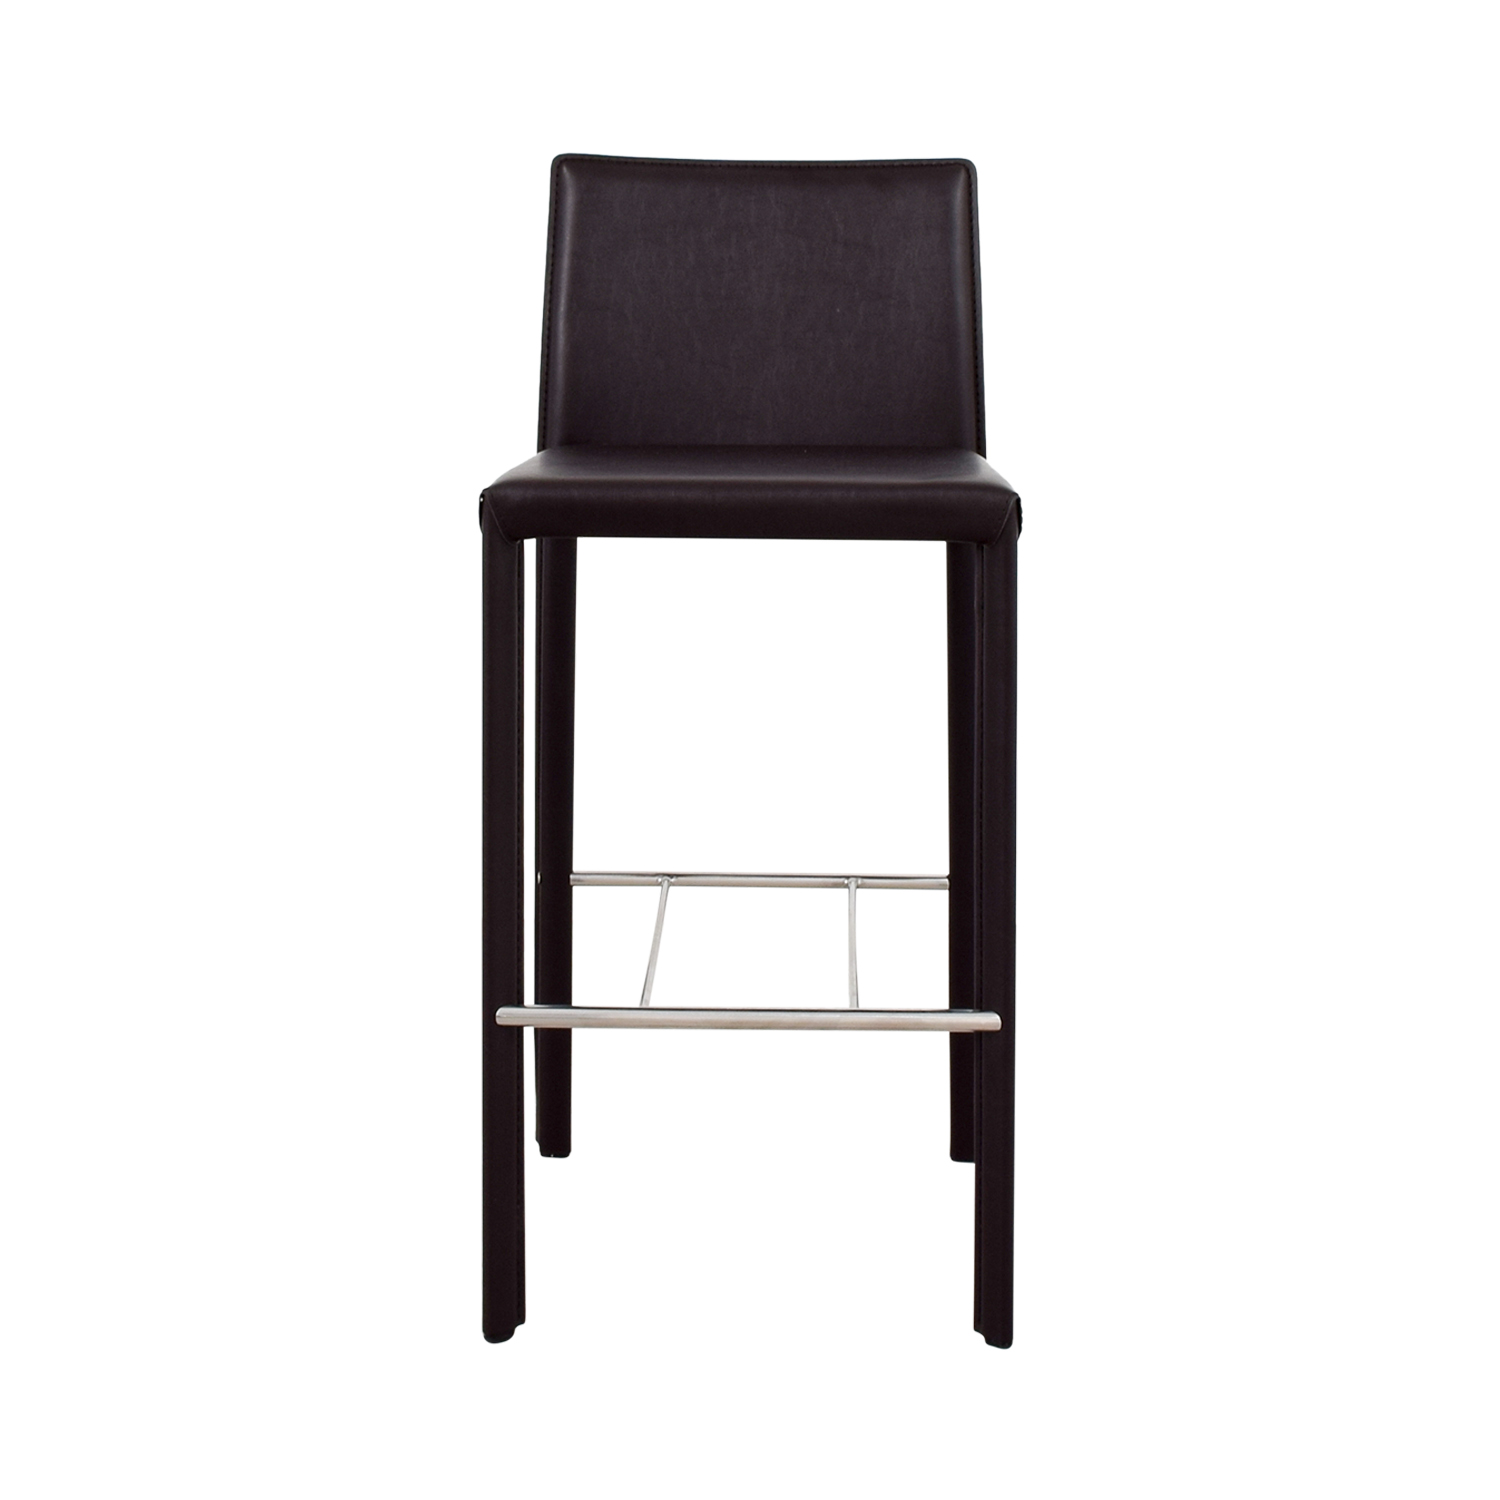 Buy Coaster Coaster Modern Brown Leatherette Bar Chair Online ...